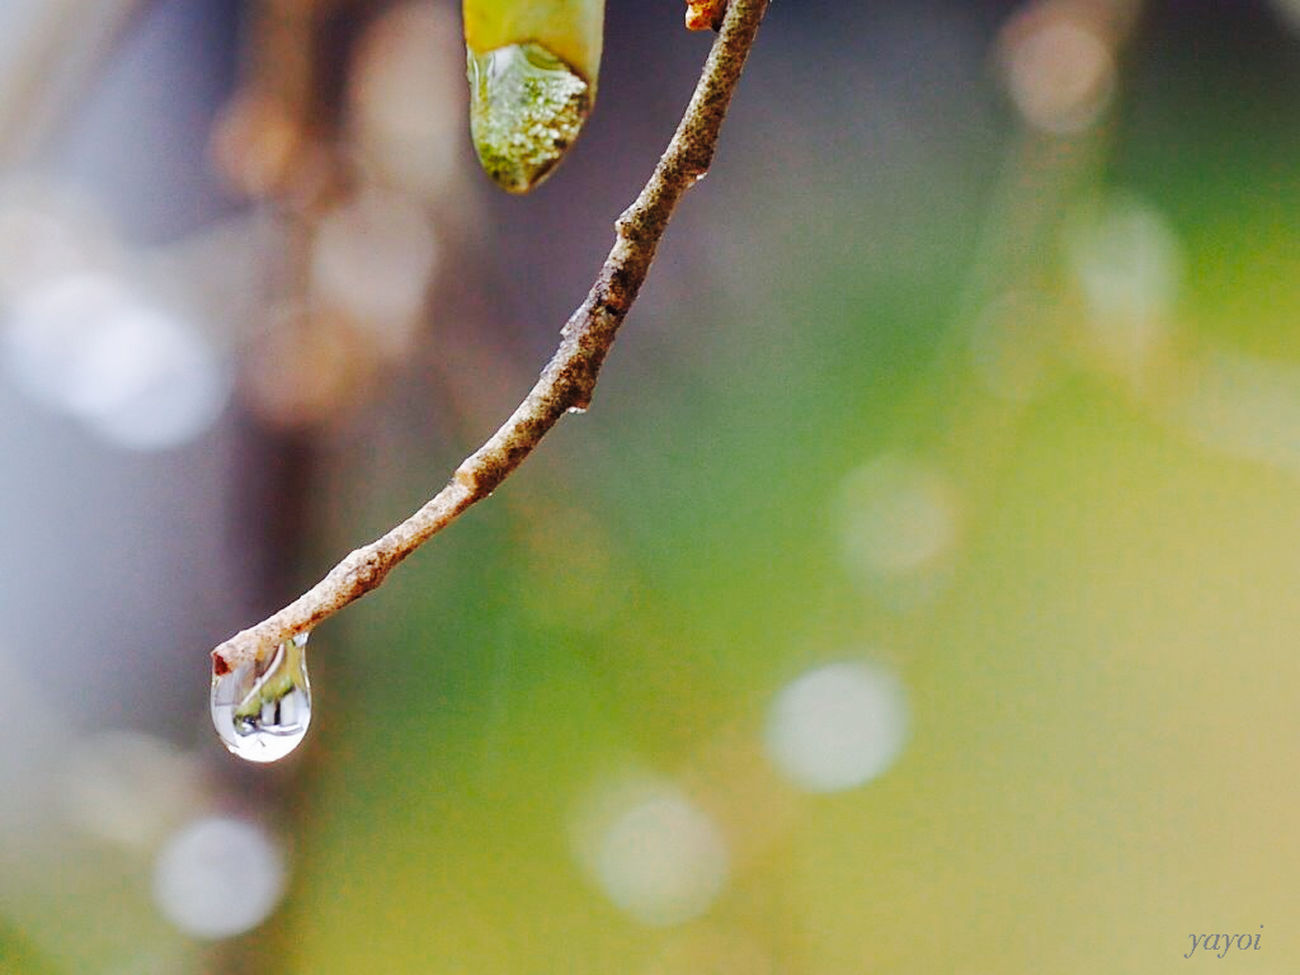 Rany Day Raindrops Rain Bokeh Photography Macro Photography Capture The Moment Open Edit EyeEm Best Shots - Nature EyeEm Nature Lover EyeEm Best Shots Hugging A Tree From My Point Of View Nature_collection Eye4photography  Tadaa Community Macro Beauty